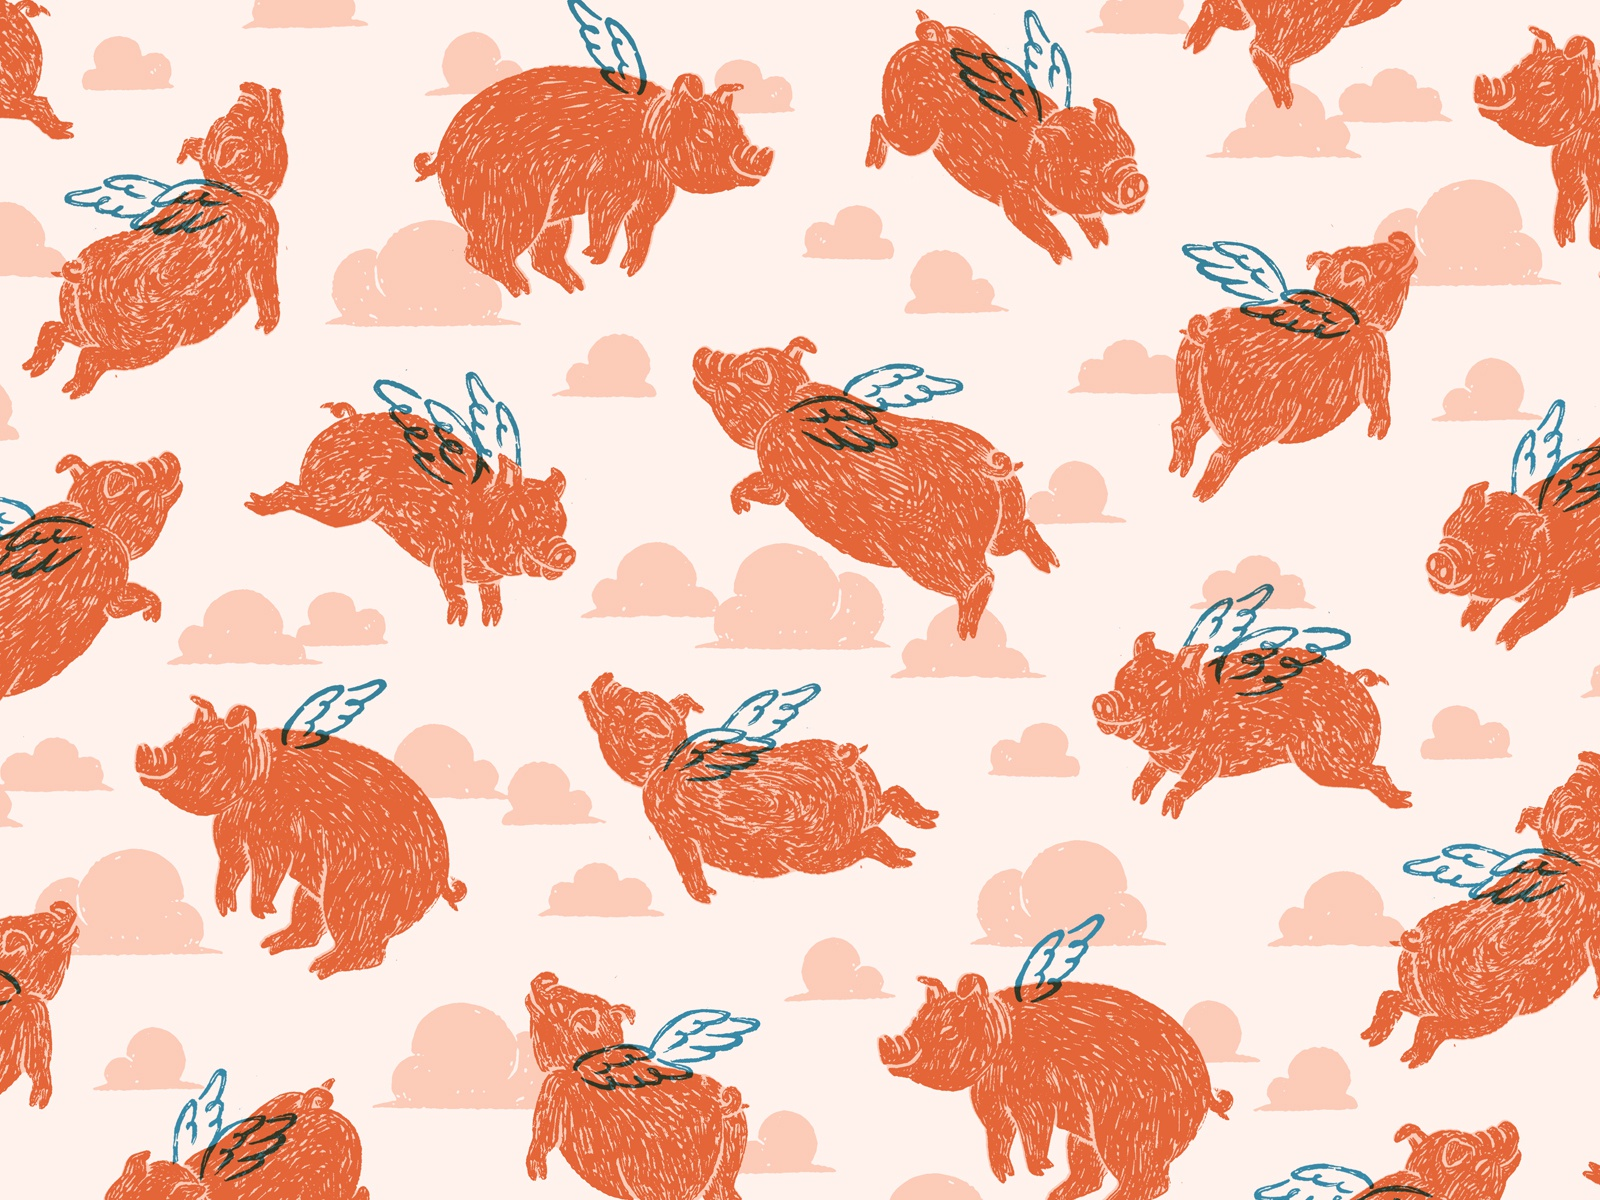 Dan lehman flying pigs pattern full